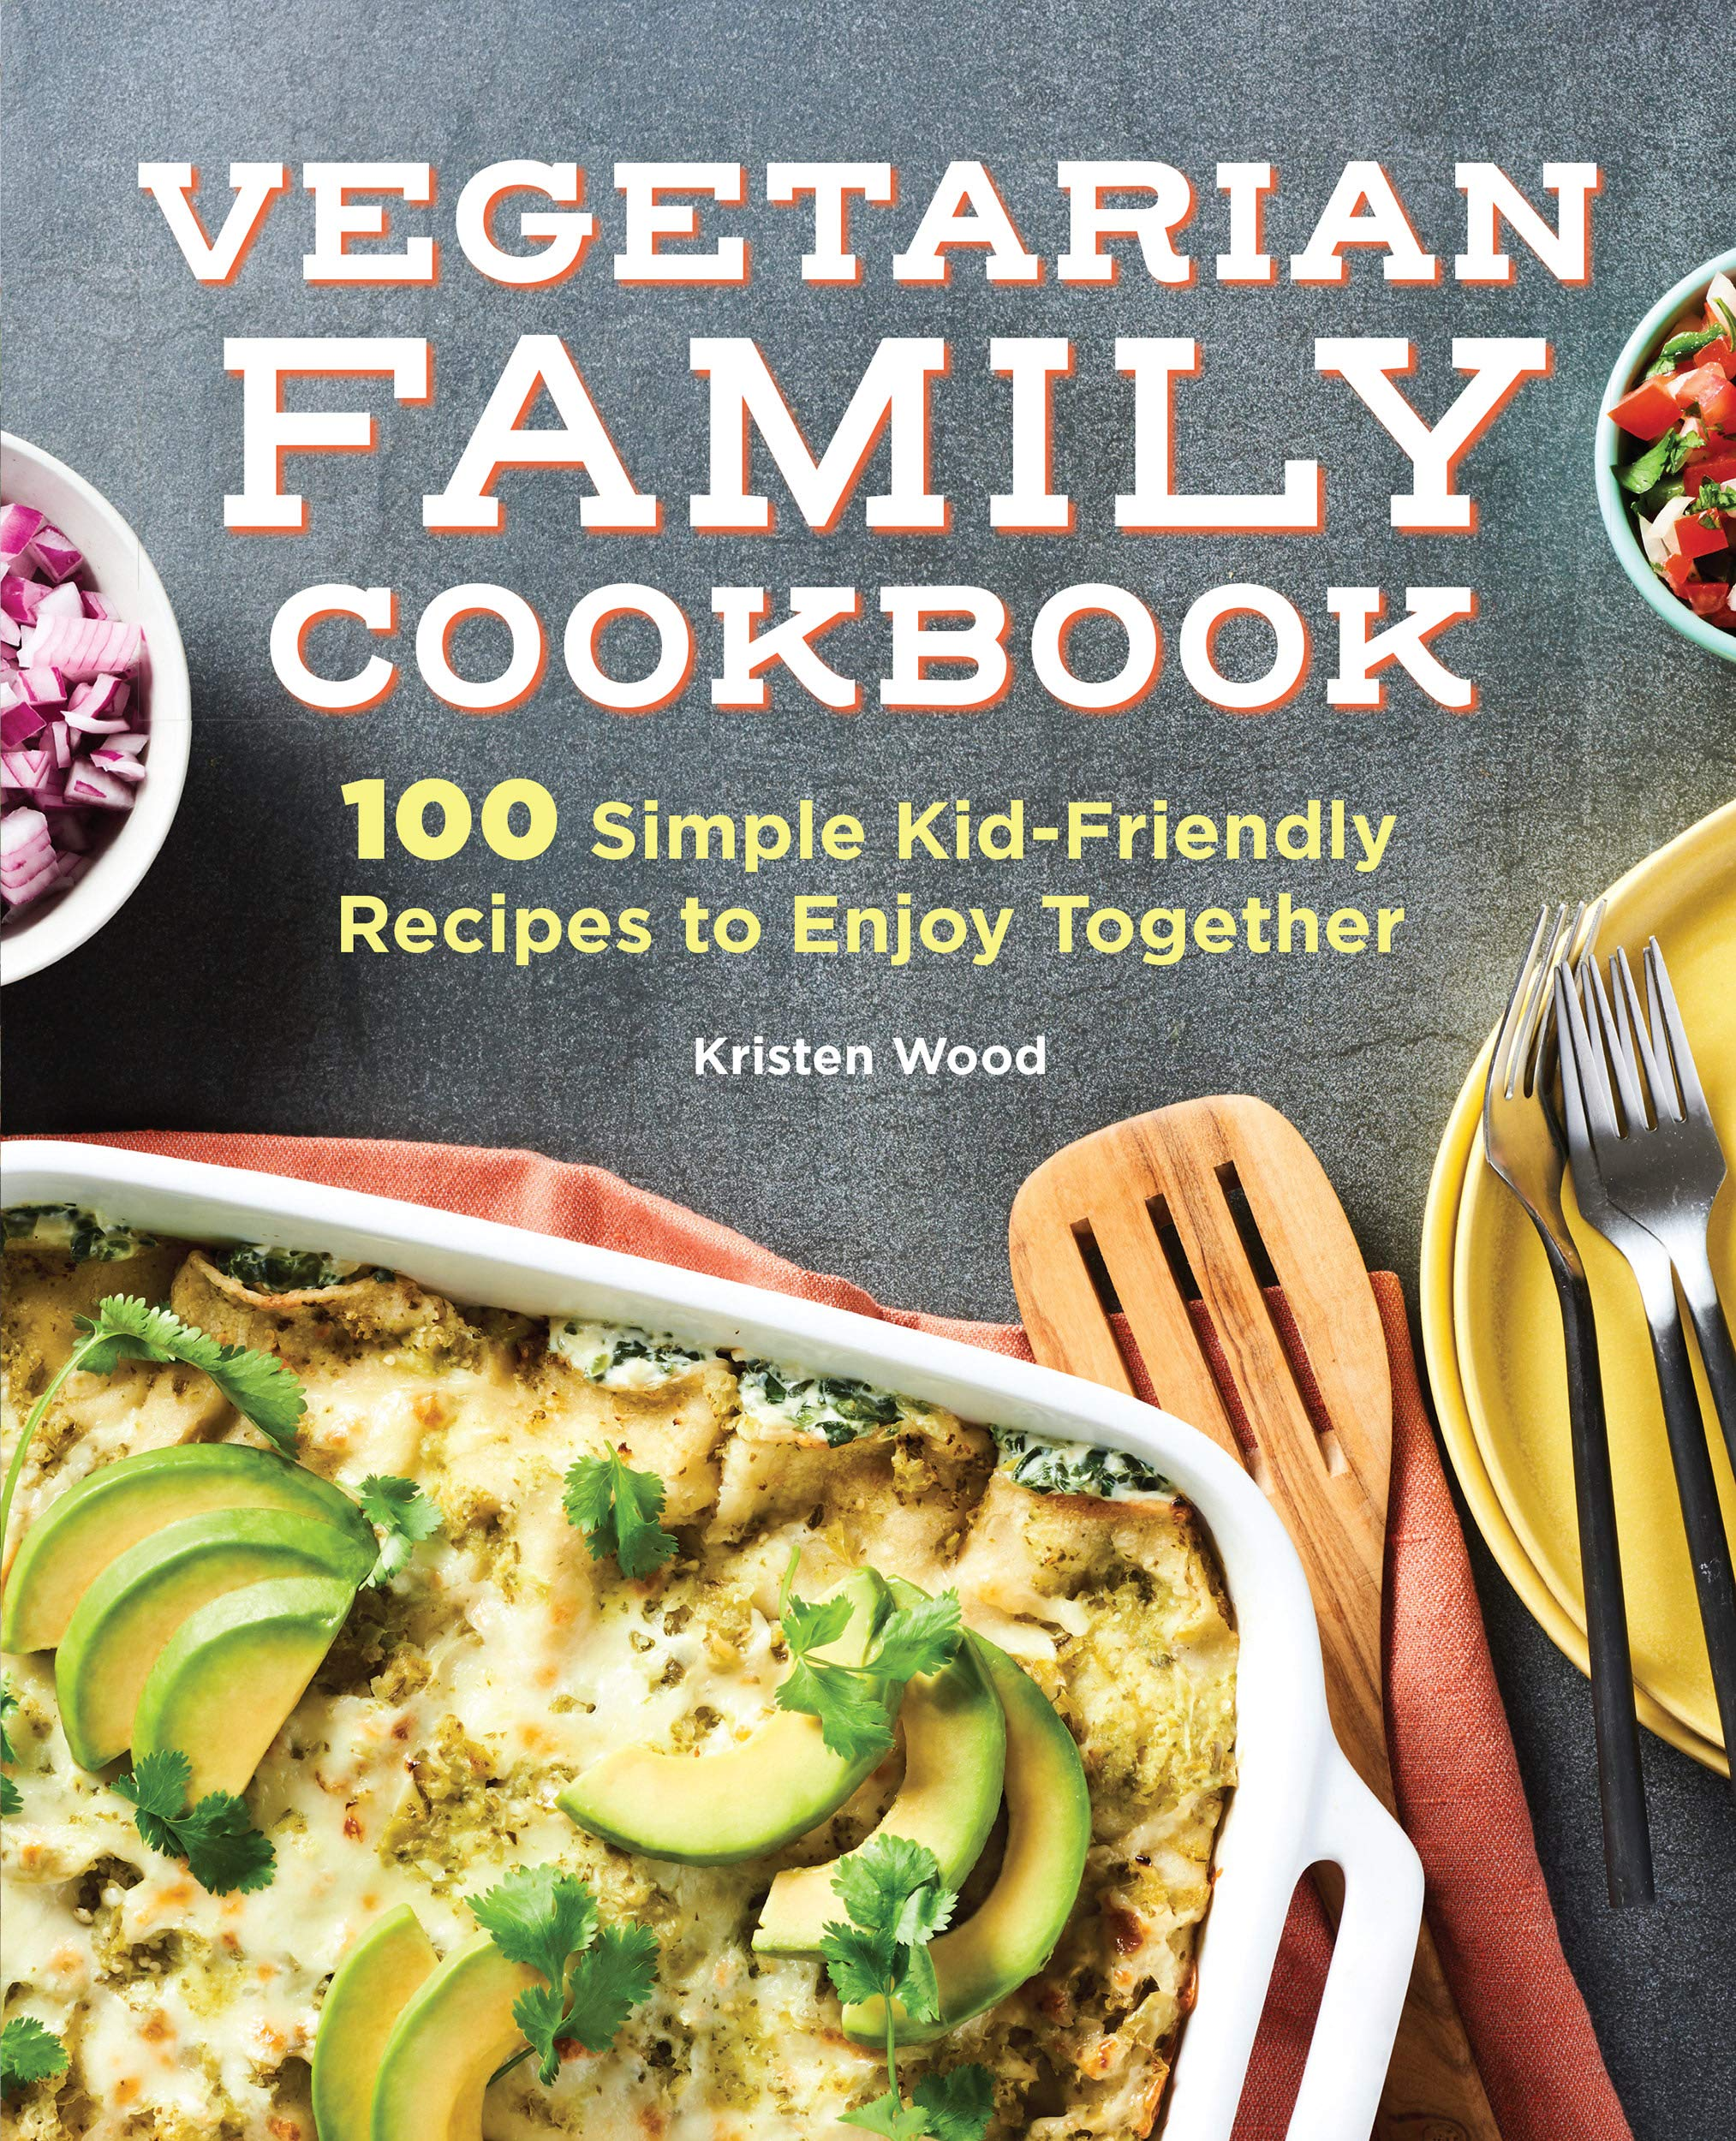 The Vegetarian Family Cookbook: 100 Simple Kid-Friendly Recipes To Enjoy Together